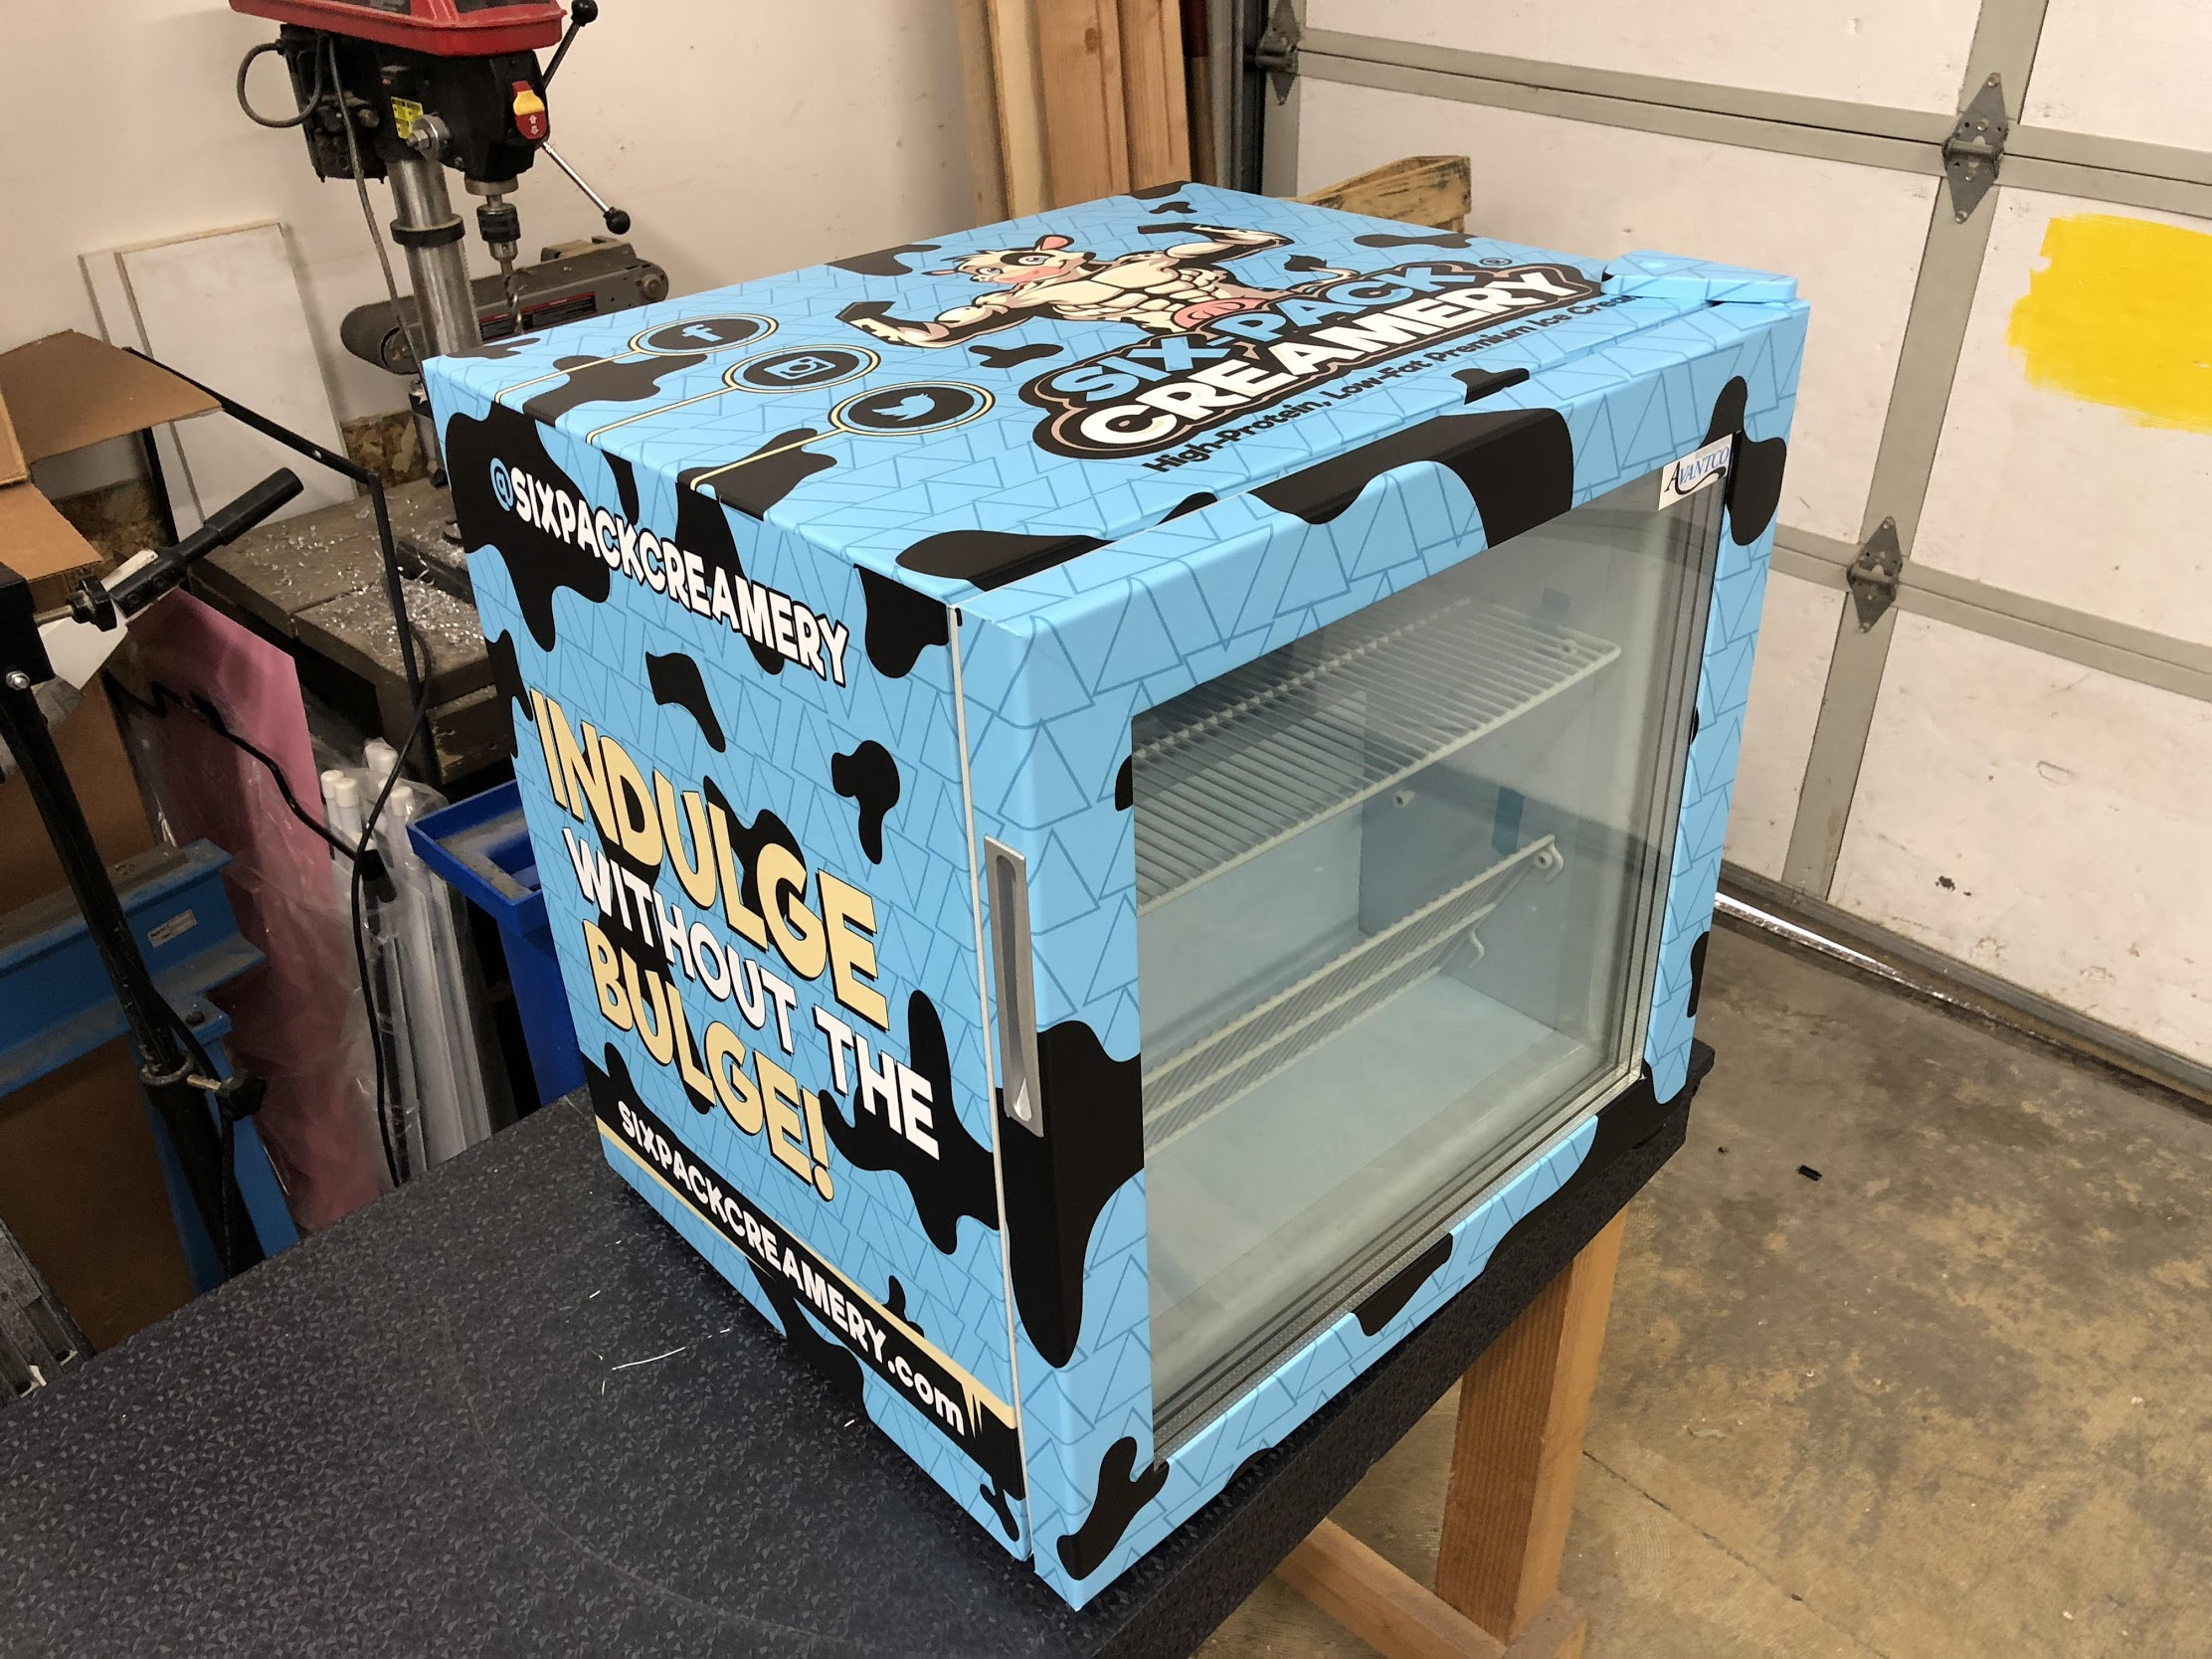 SIX PACK CREAMERY Freezer Wrap